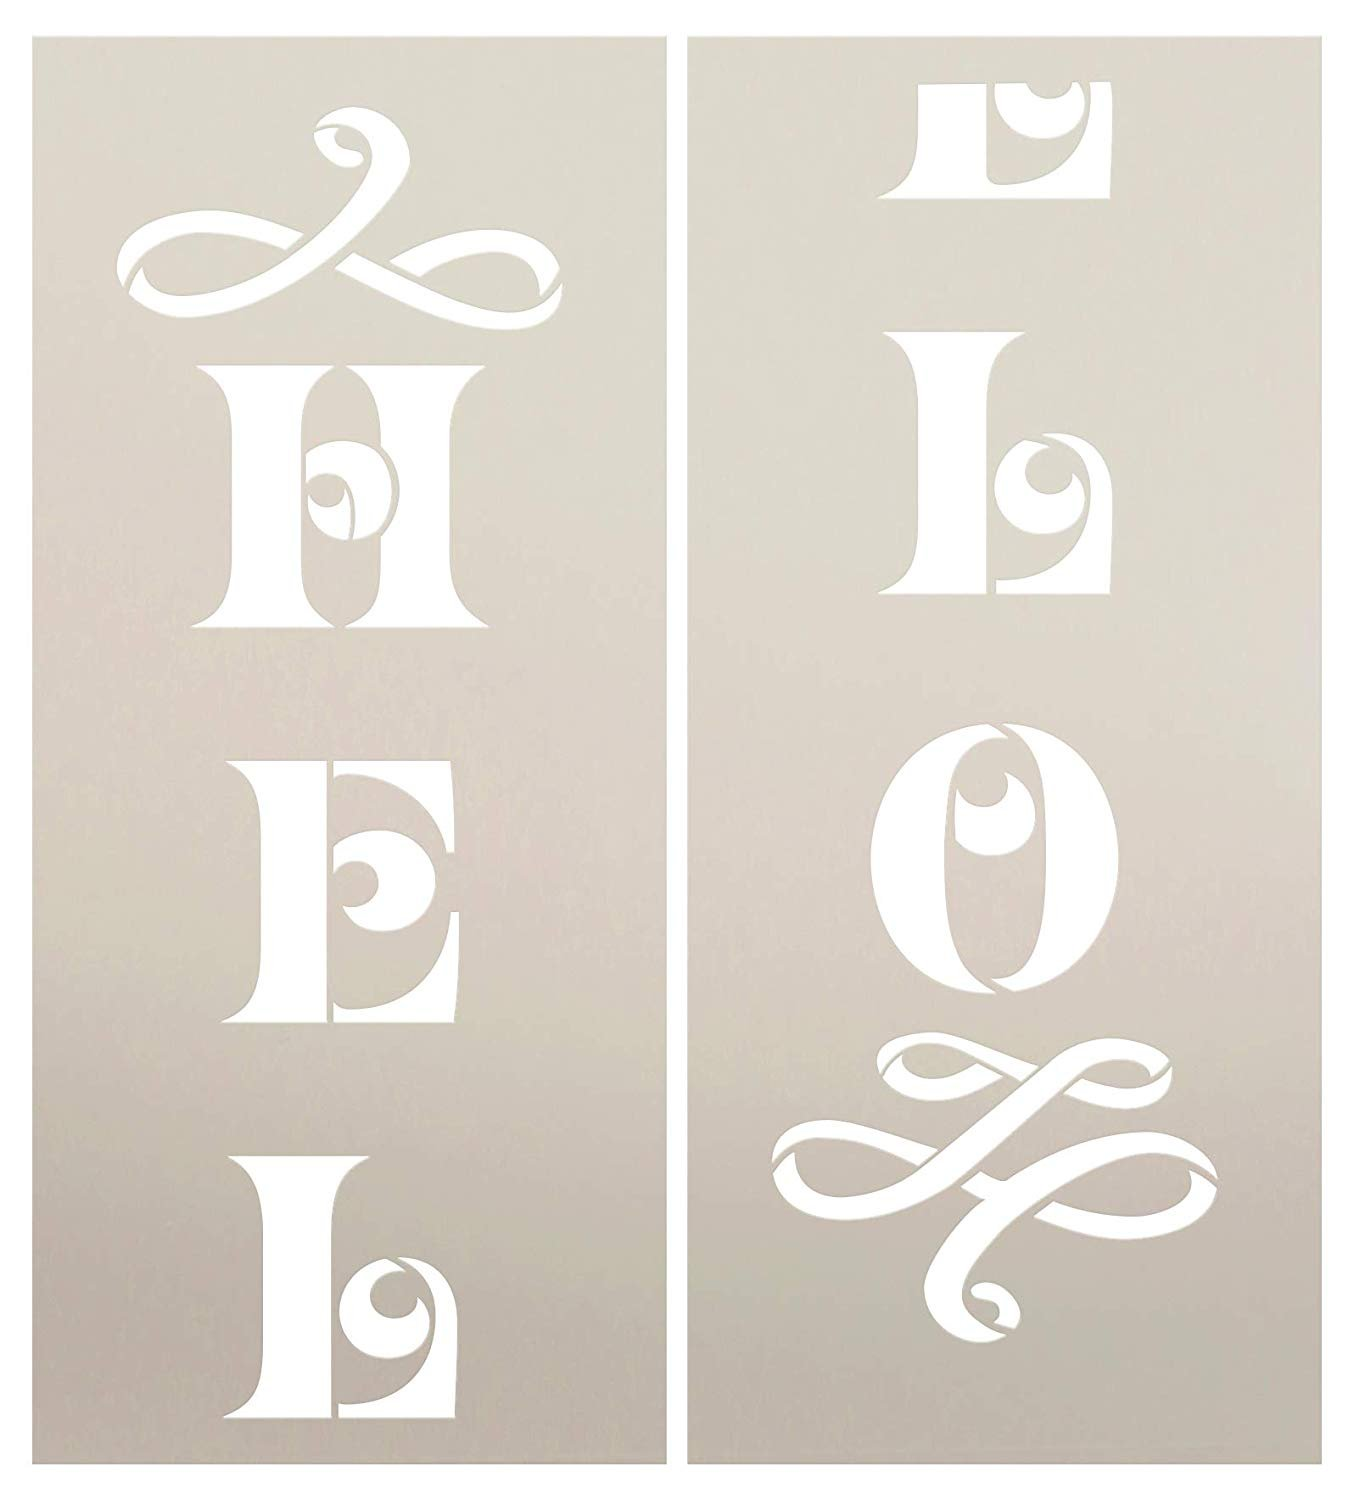 Hello Flourish Tall Porch Stencil by StudioR12 | 2 Piece | DIY Large Vertical Welcome Home Decor for Front Door or Entryway | Craft & Paint Wood Leaner Signs | Reusable Mylar Template | Size 4ft